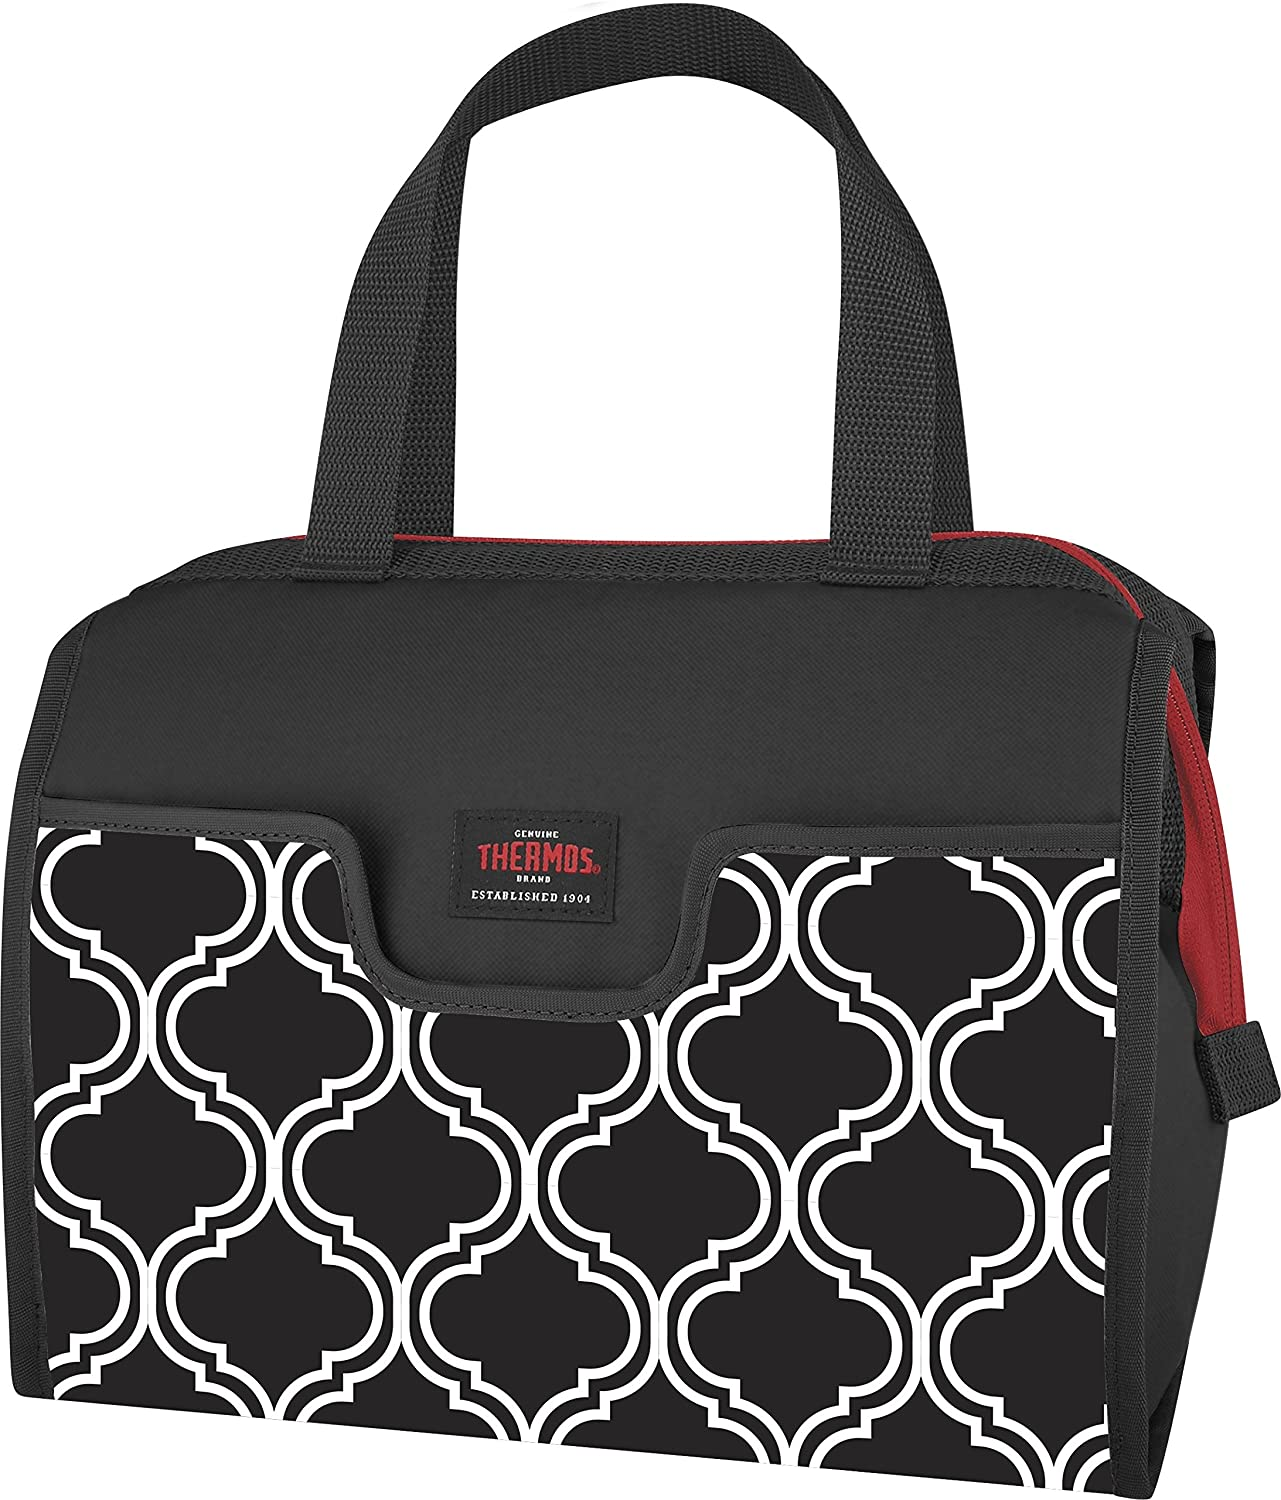 Thermos C55209004BK Raya 9 Can Lunch Duffle, Brooke, Black